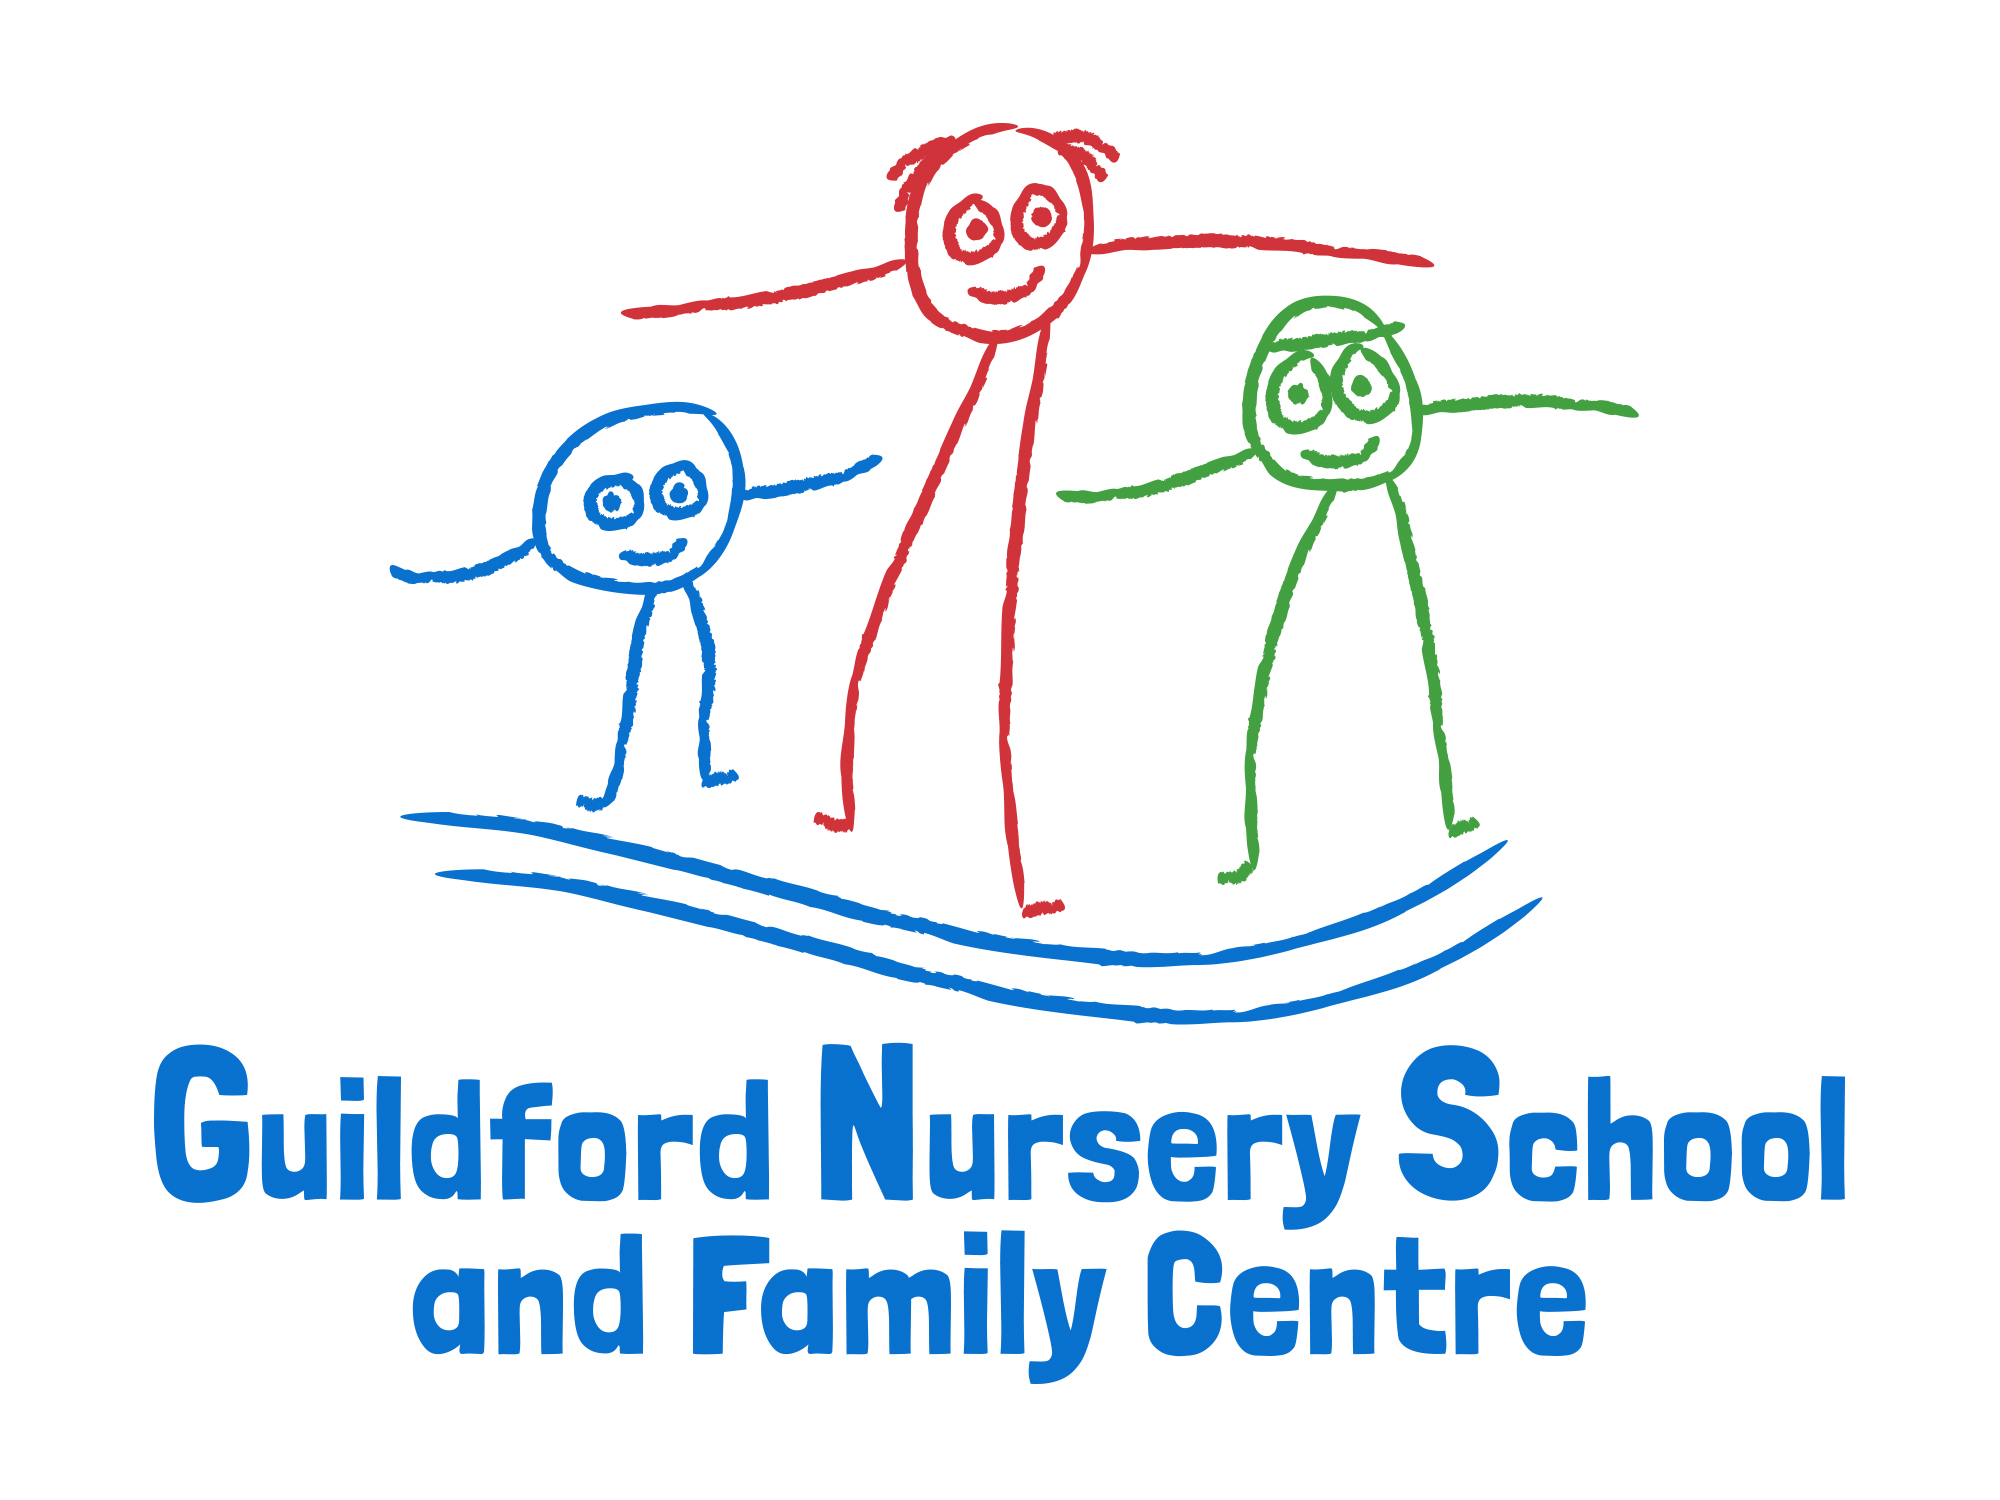 Guildford Nursery School and Family Centre